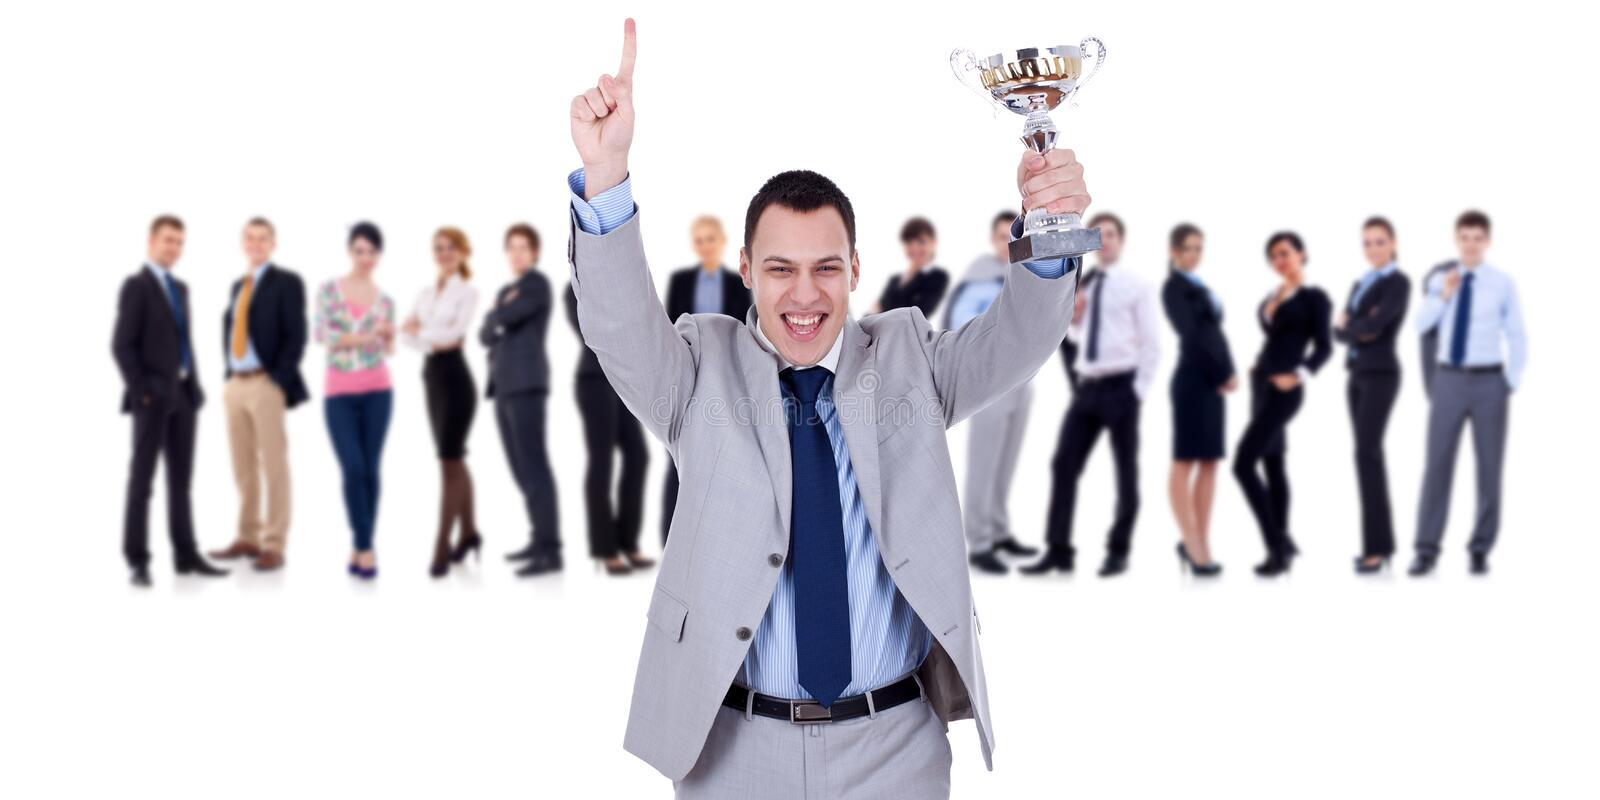 Download Winning Businessteam Leader Holding Trophy Stock Photo - Image: 18814200